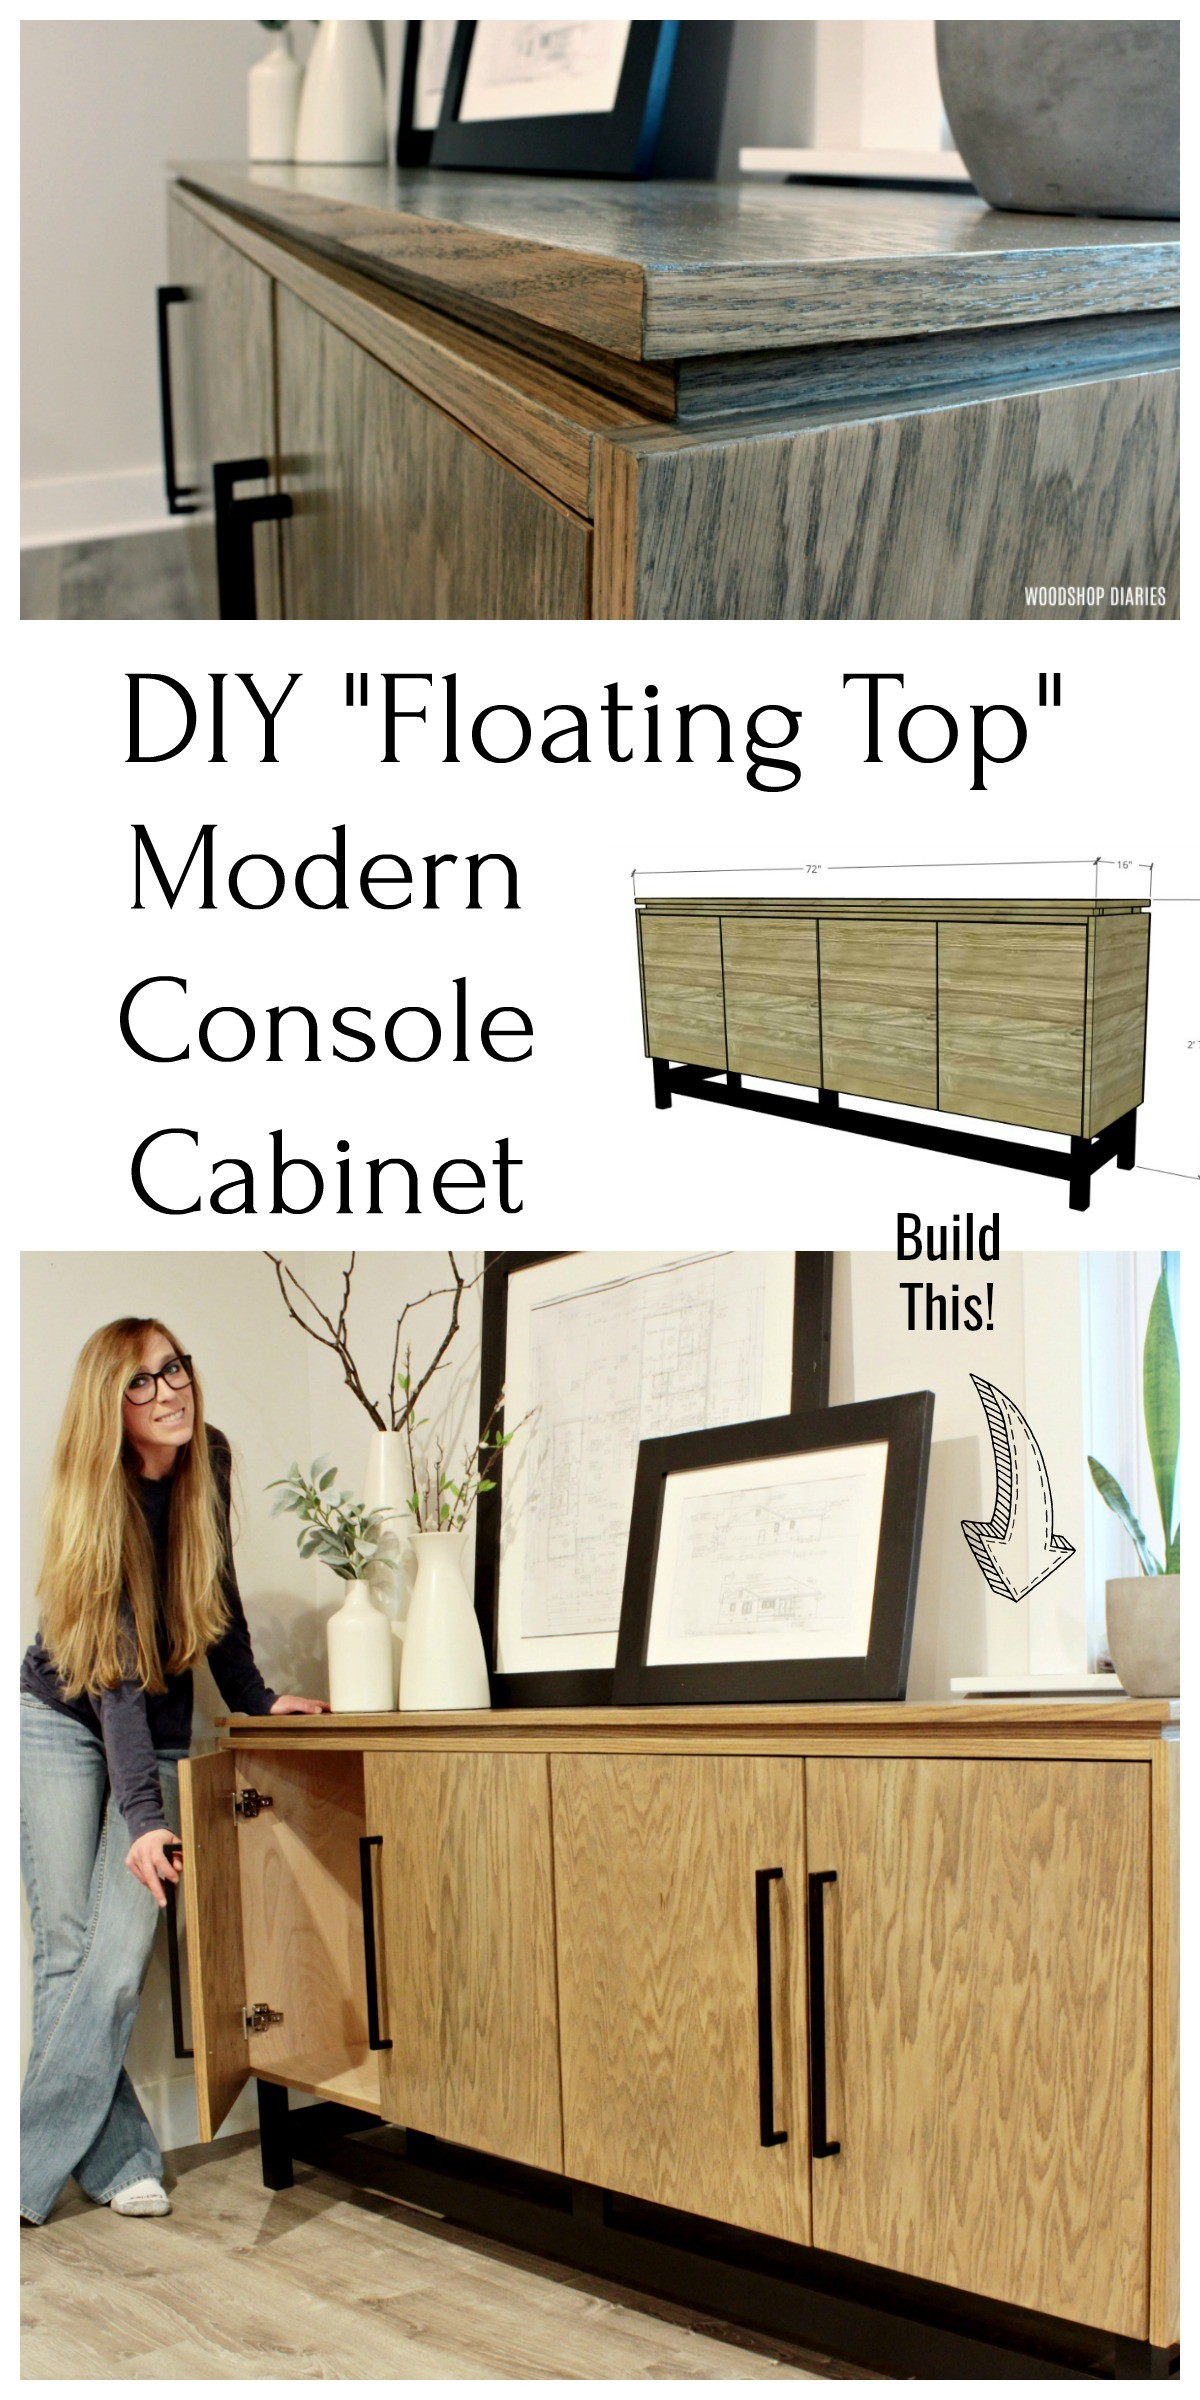 DIY Floating Top Modern Console Cabinet Collage Pinterest Image